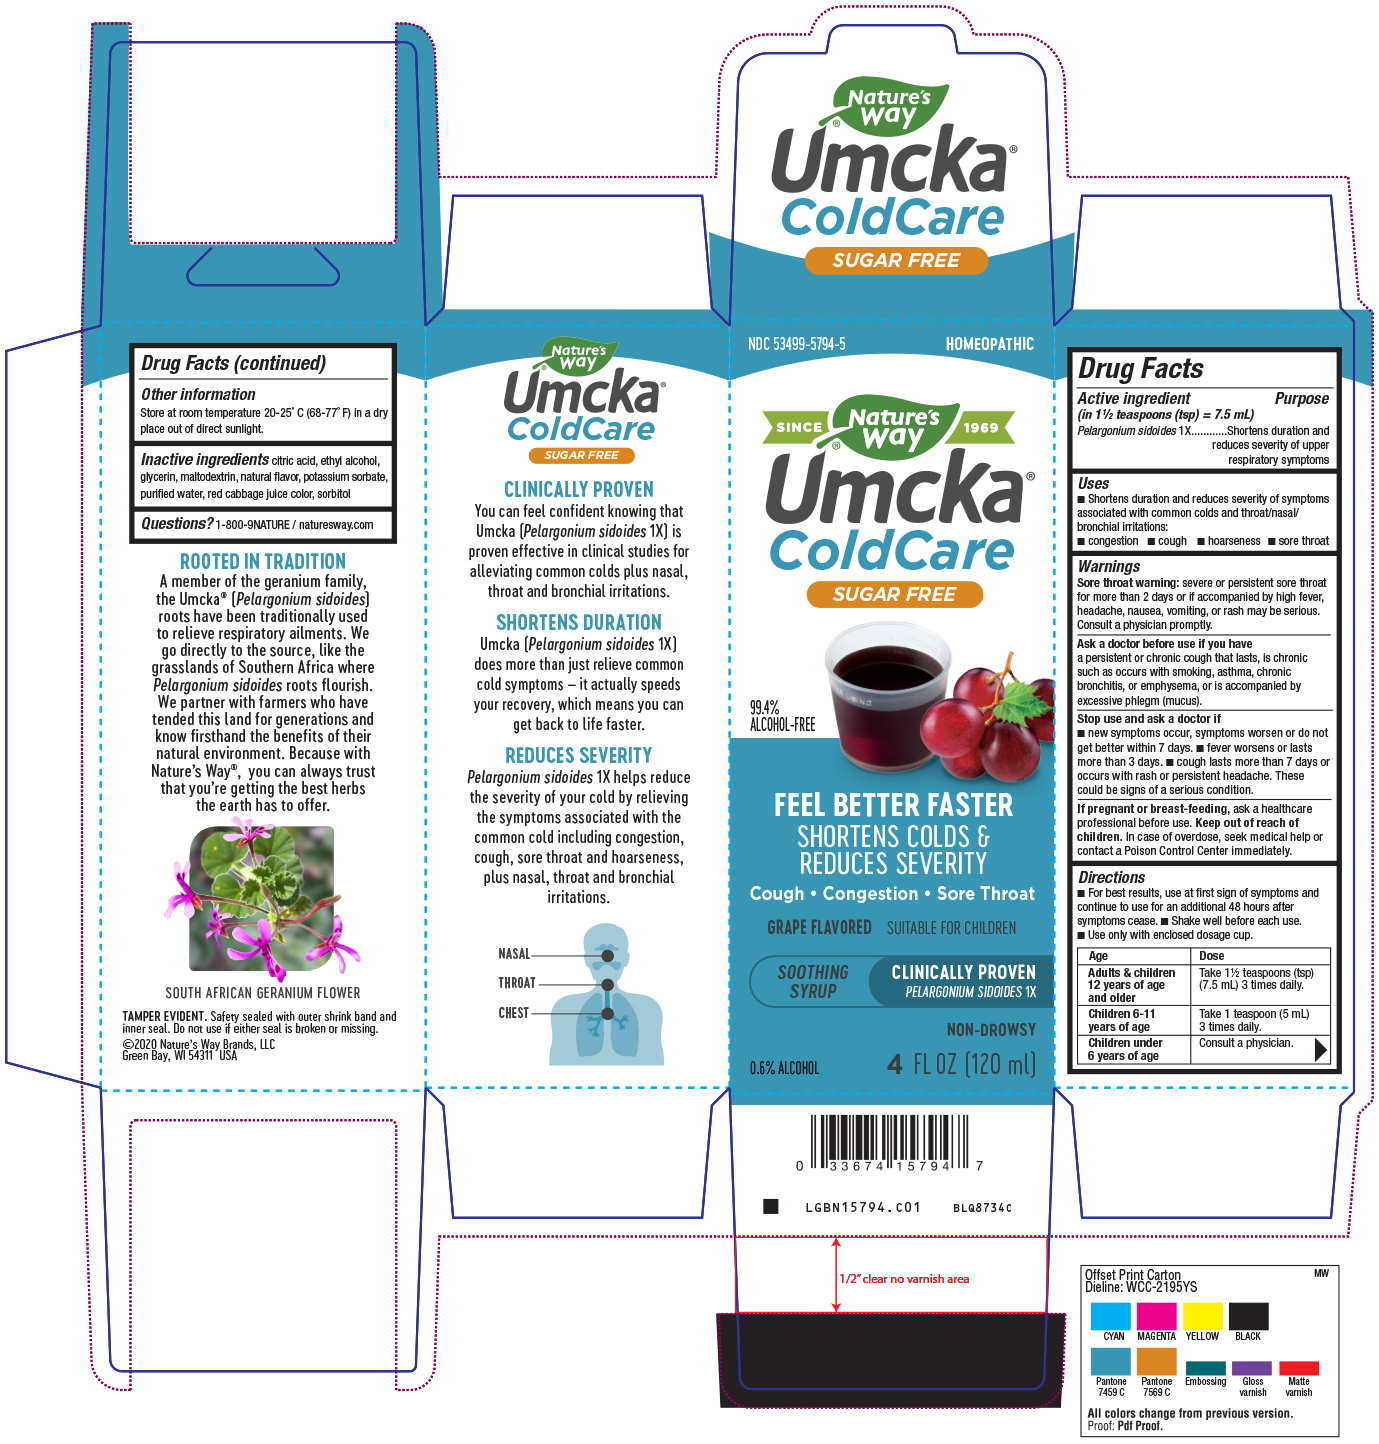 LGBN15794.C01 Umcka Sugar-Free Grape Syrup 4 oz.jpg